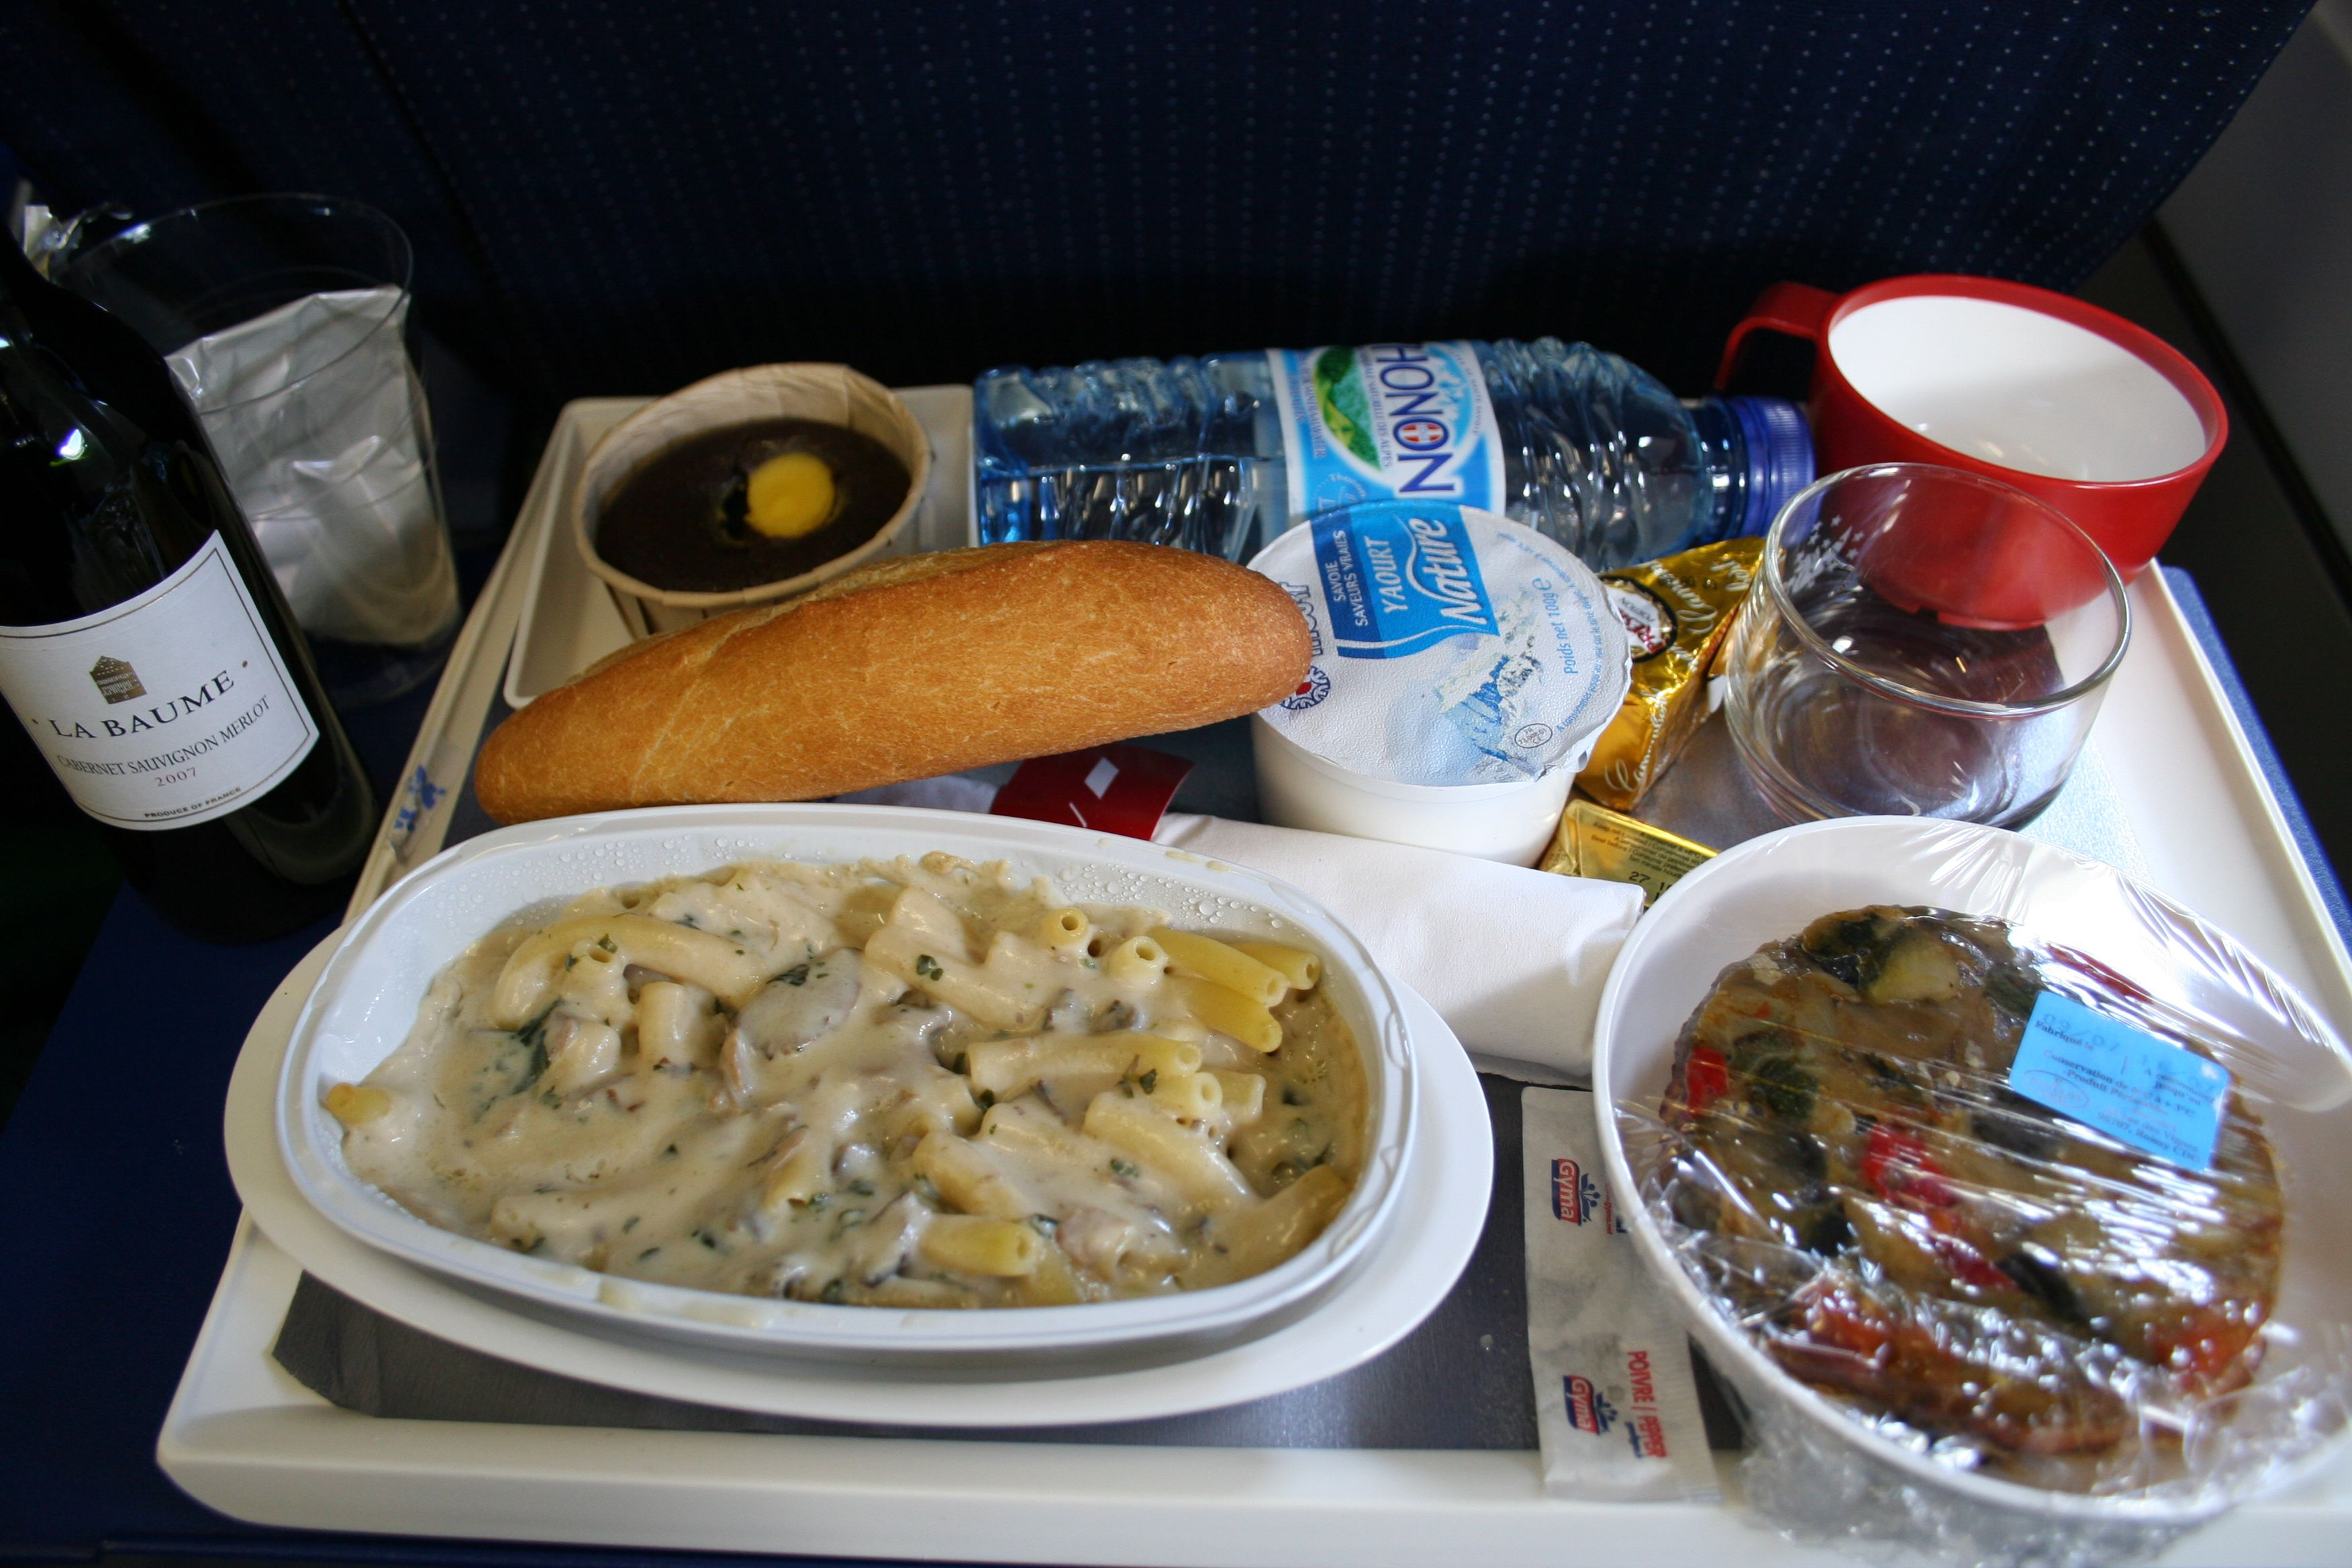 Air France Meal on a Tray  Ruth E Hendricks Photography